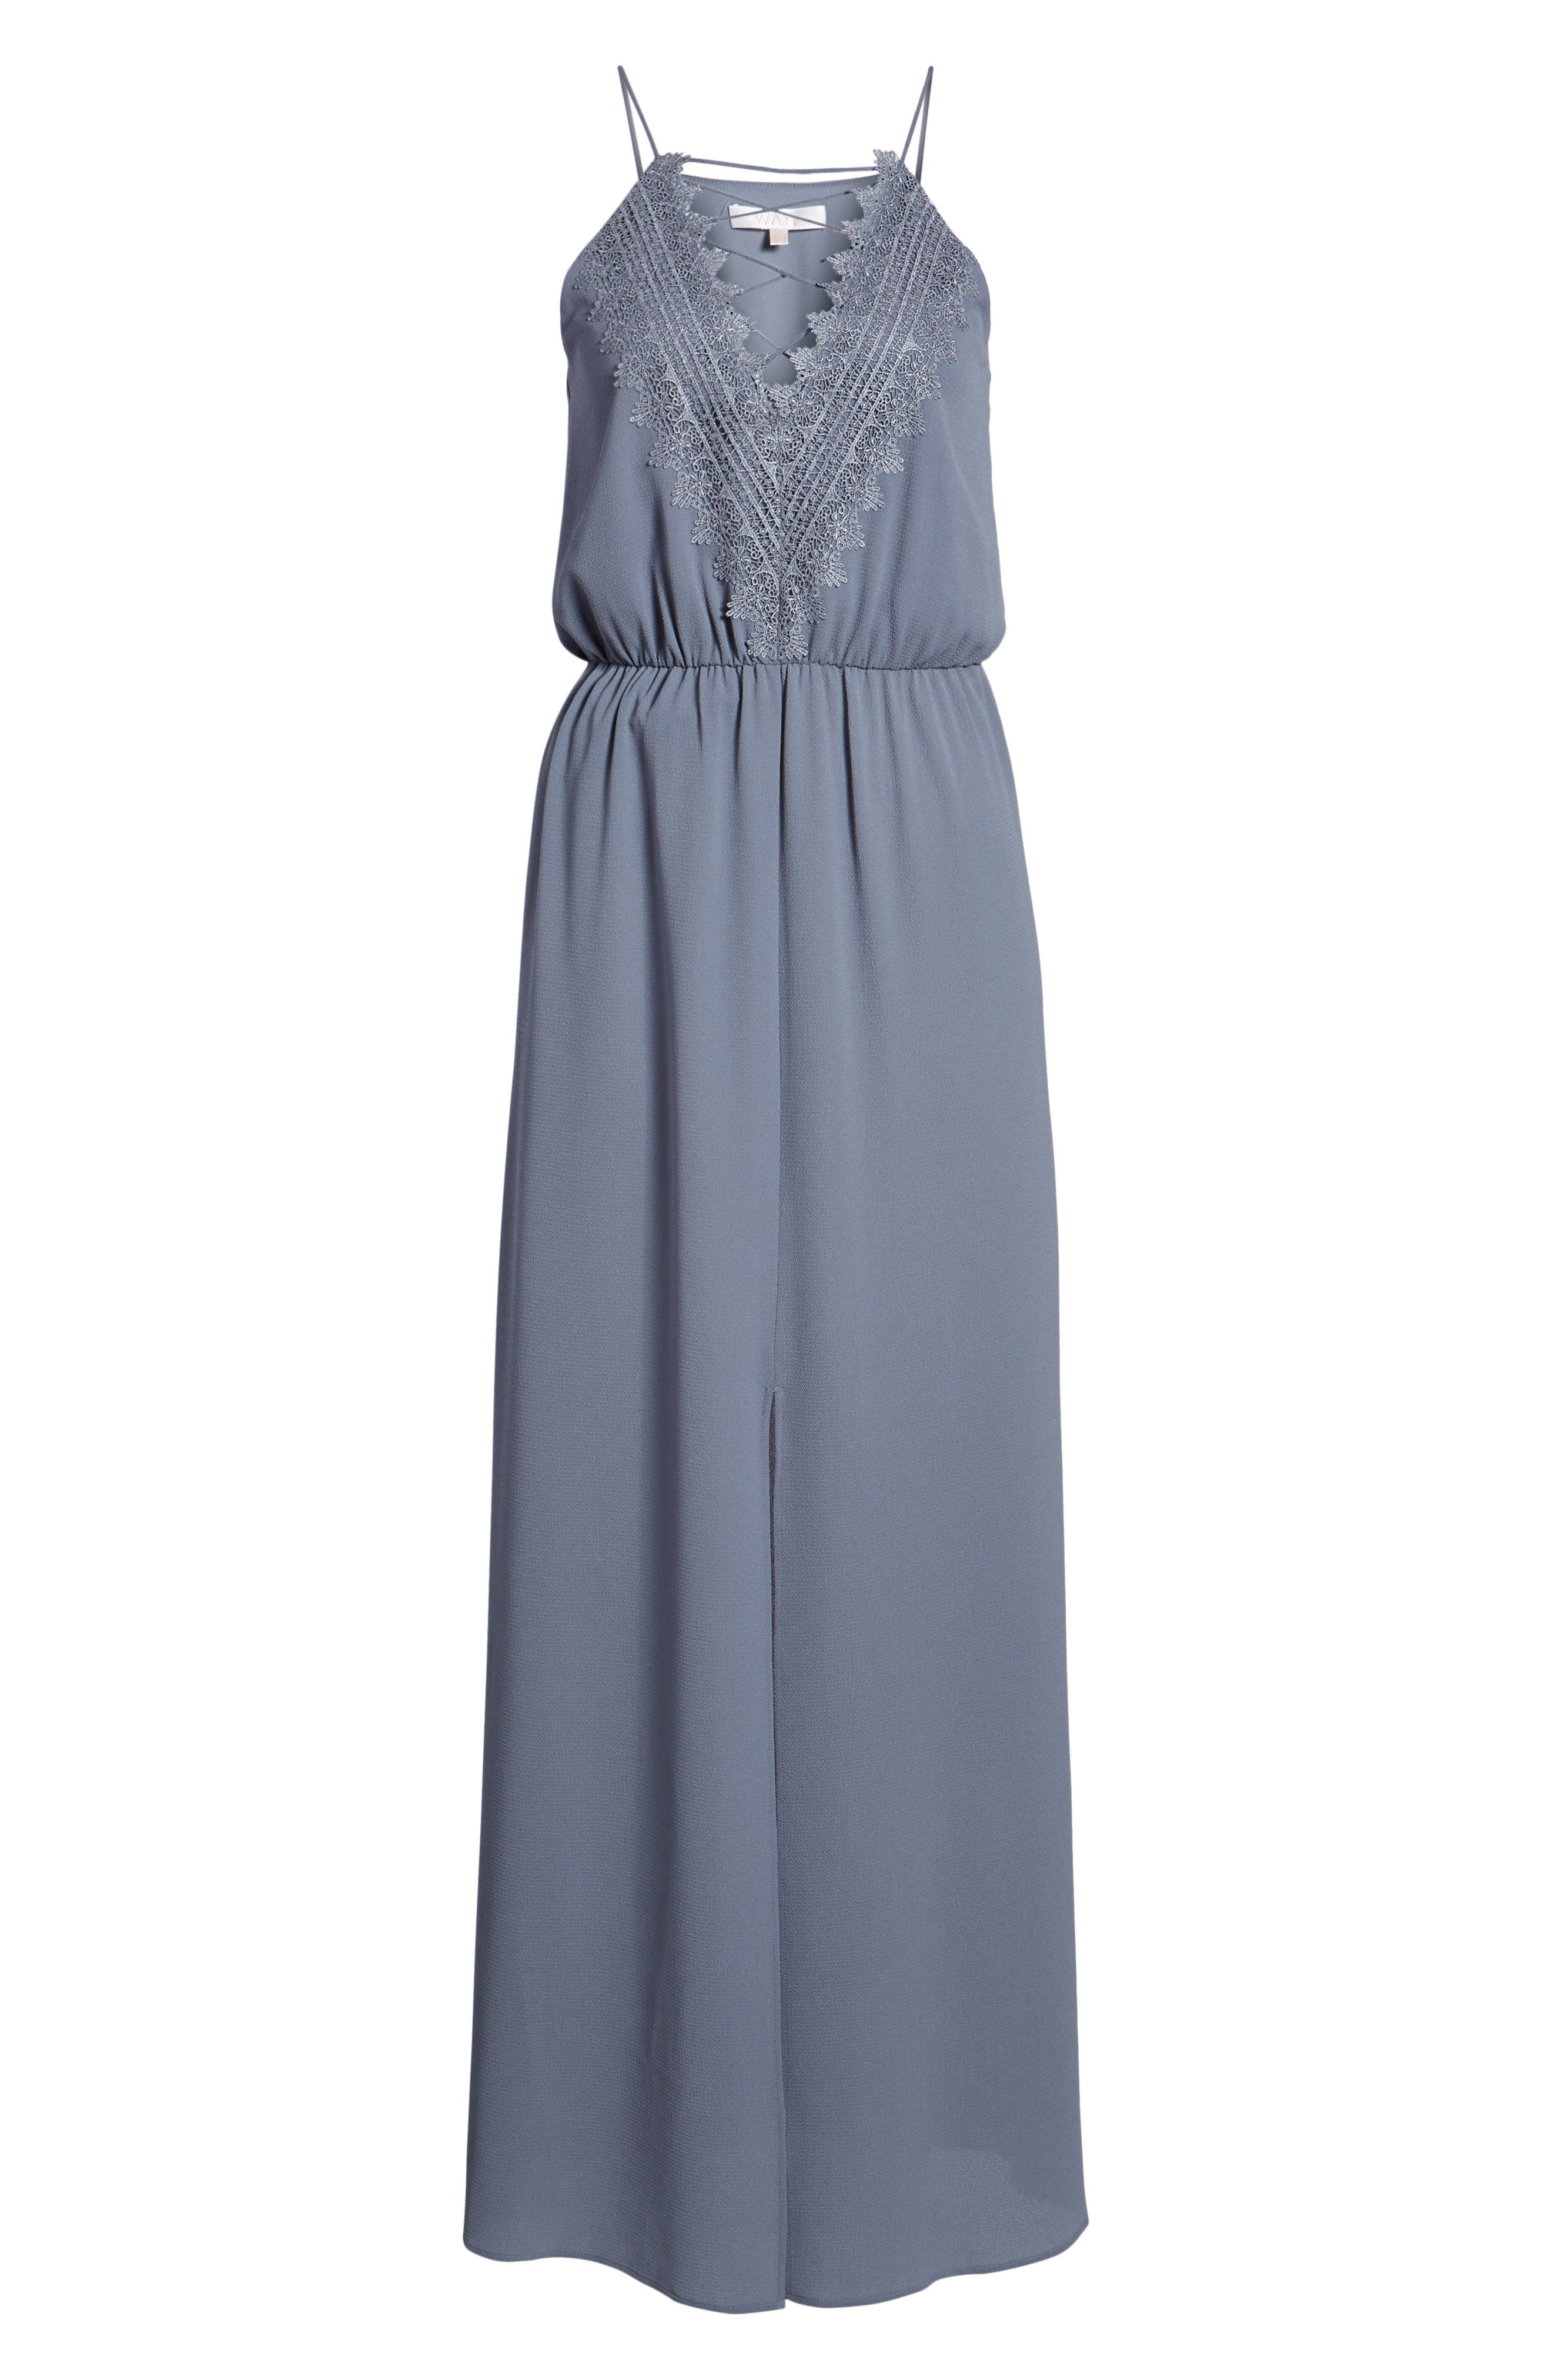 Posie Maxi Dress,                             Alternate thumbnail 7, color,                             027